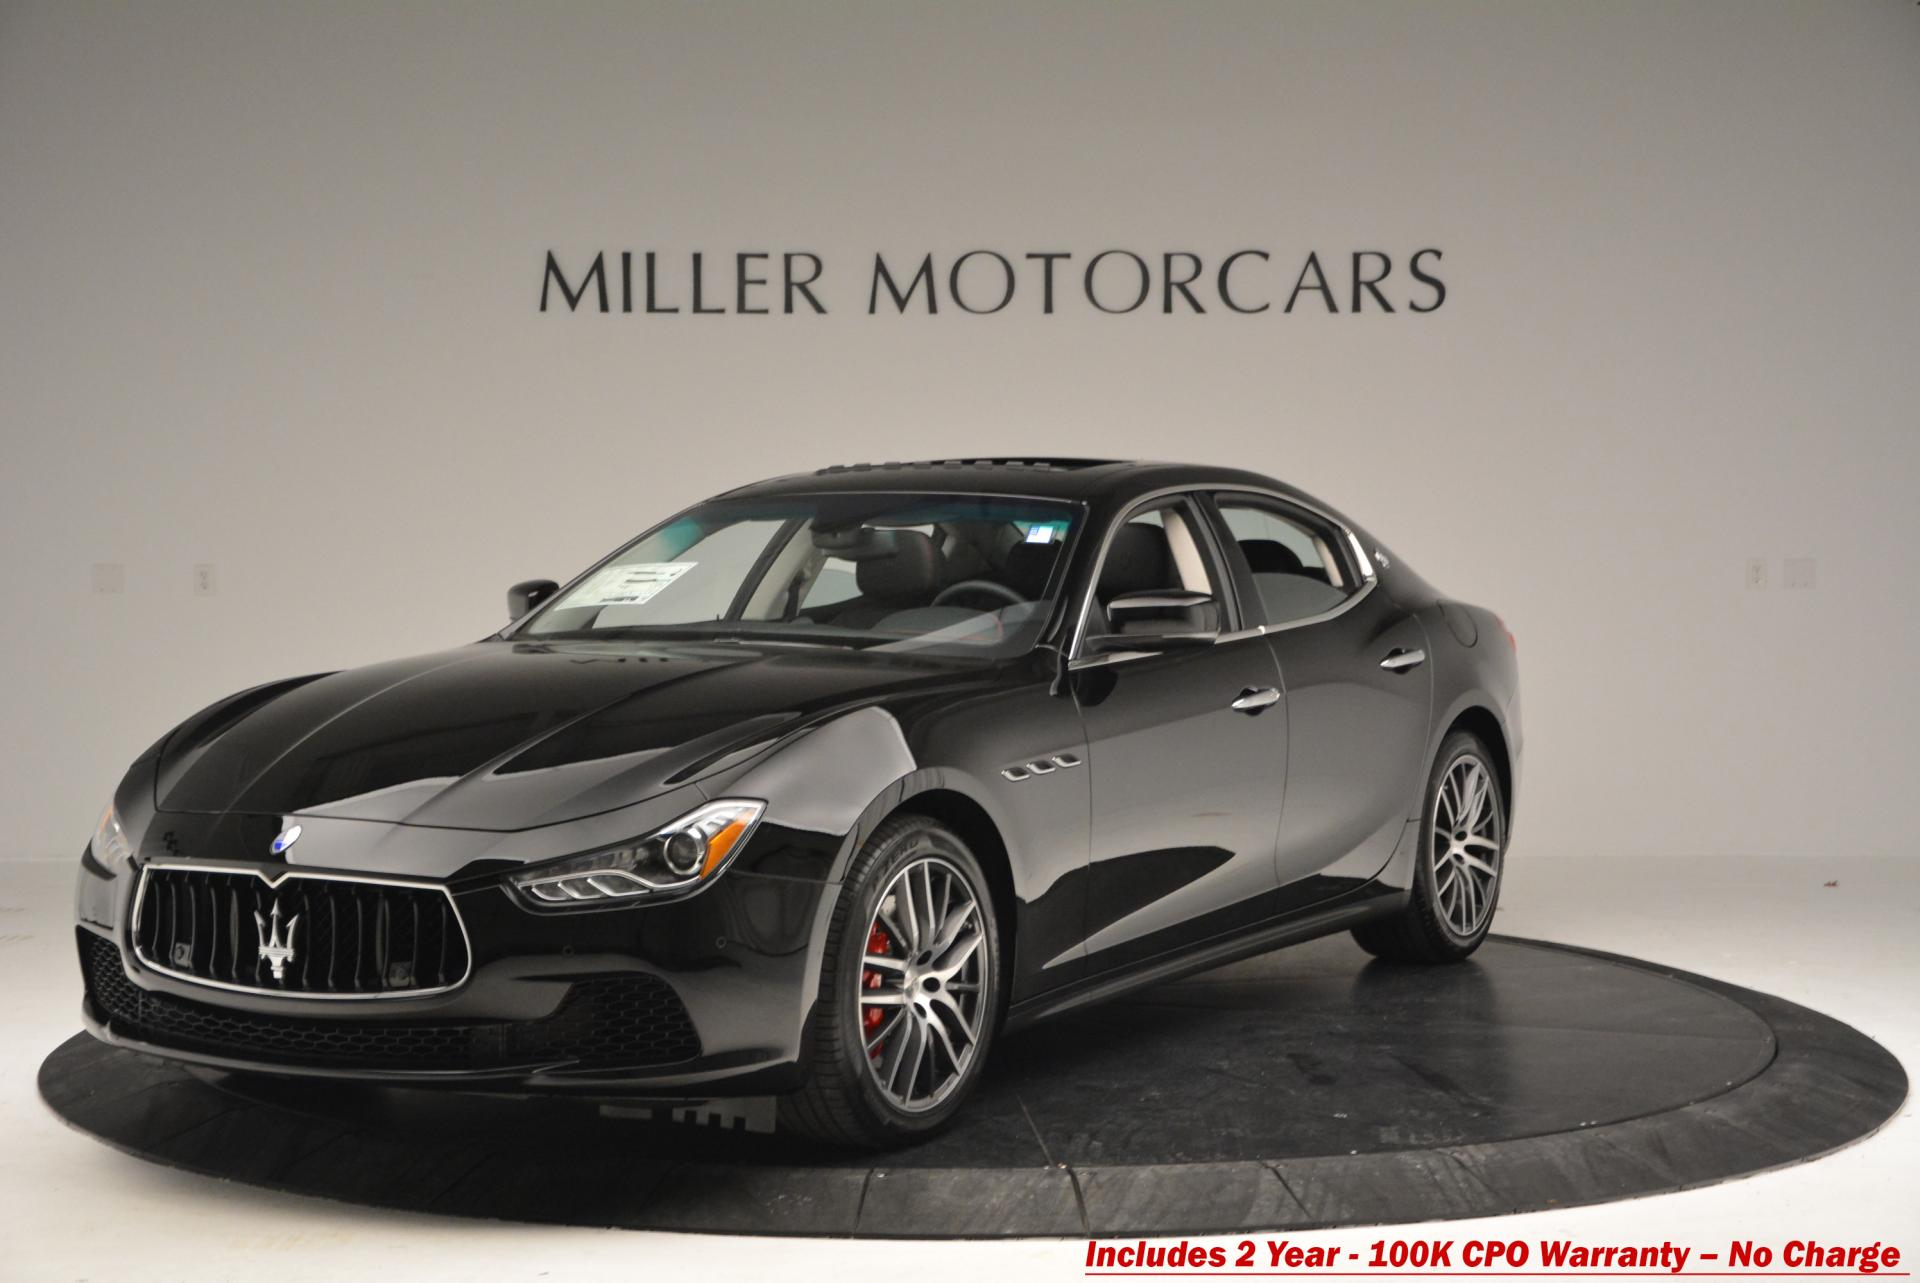 Used 2016 Maserati Ghibli S Q4 for sale Sold at Maserati of Greenwich in Greenwich CT 06830 1